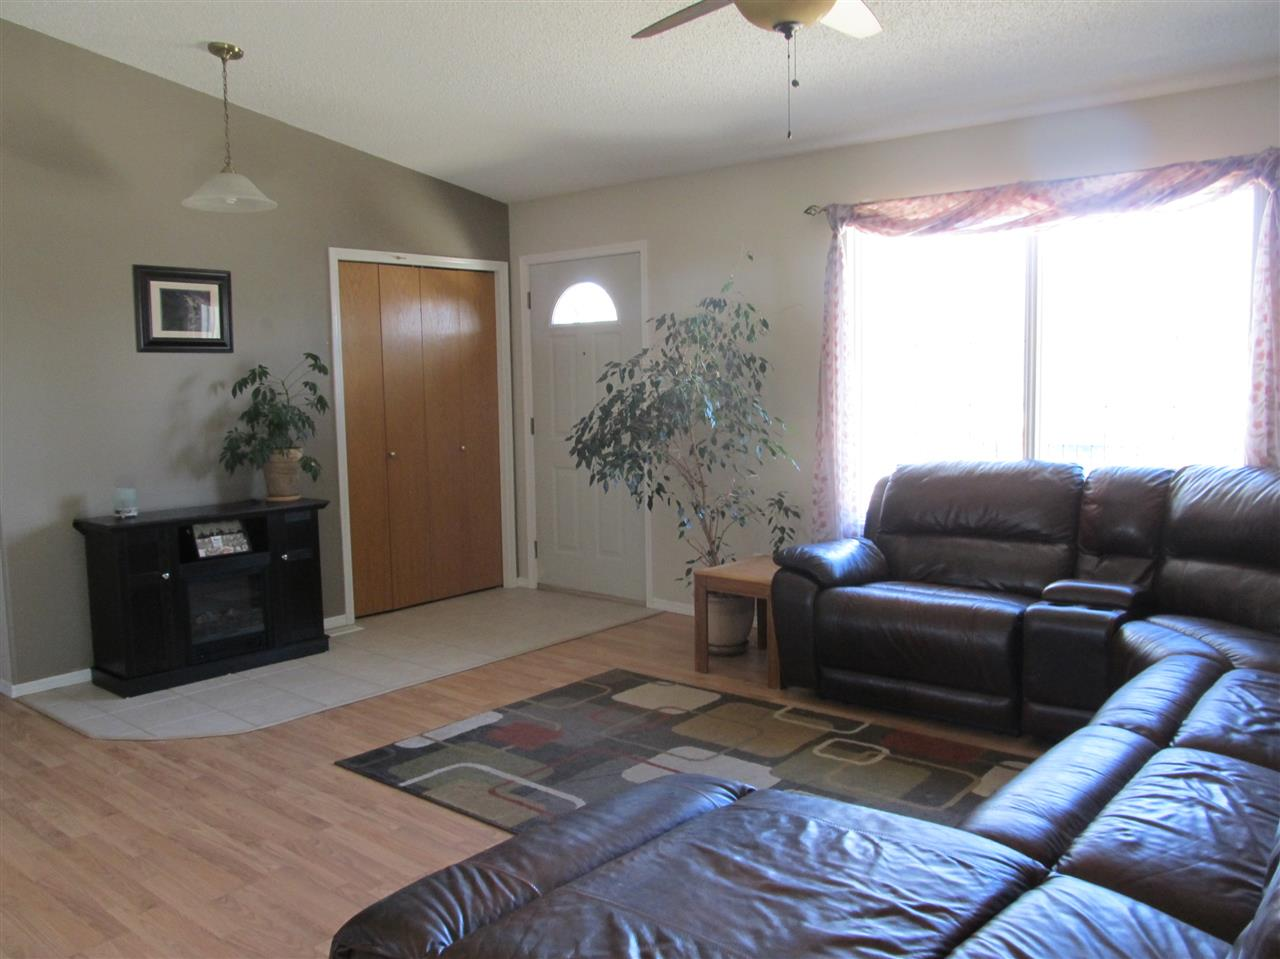 Photo 4: 57016 RR 233: Rural Sturgeon County House for sale : MLS(r) # E4072040